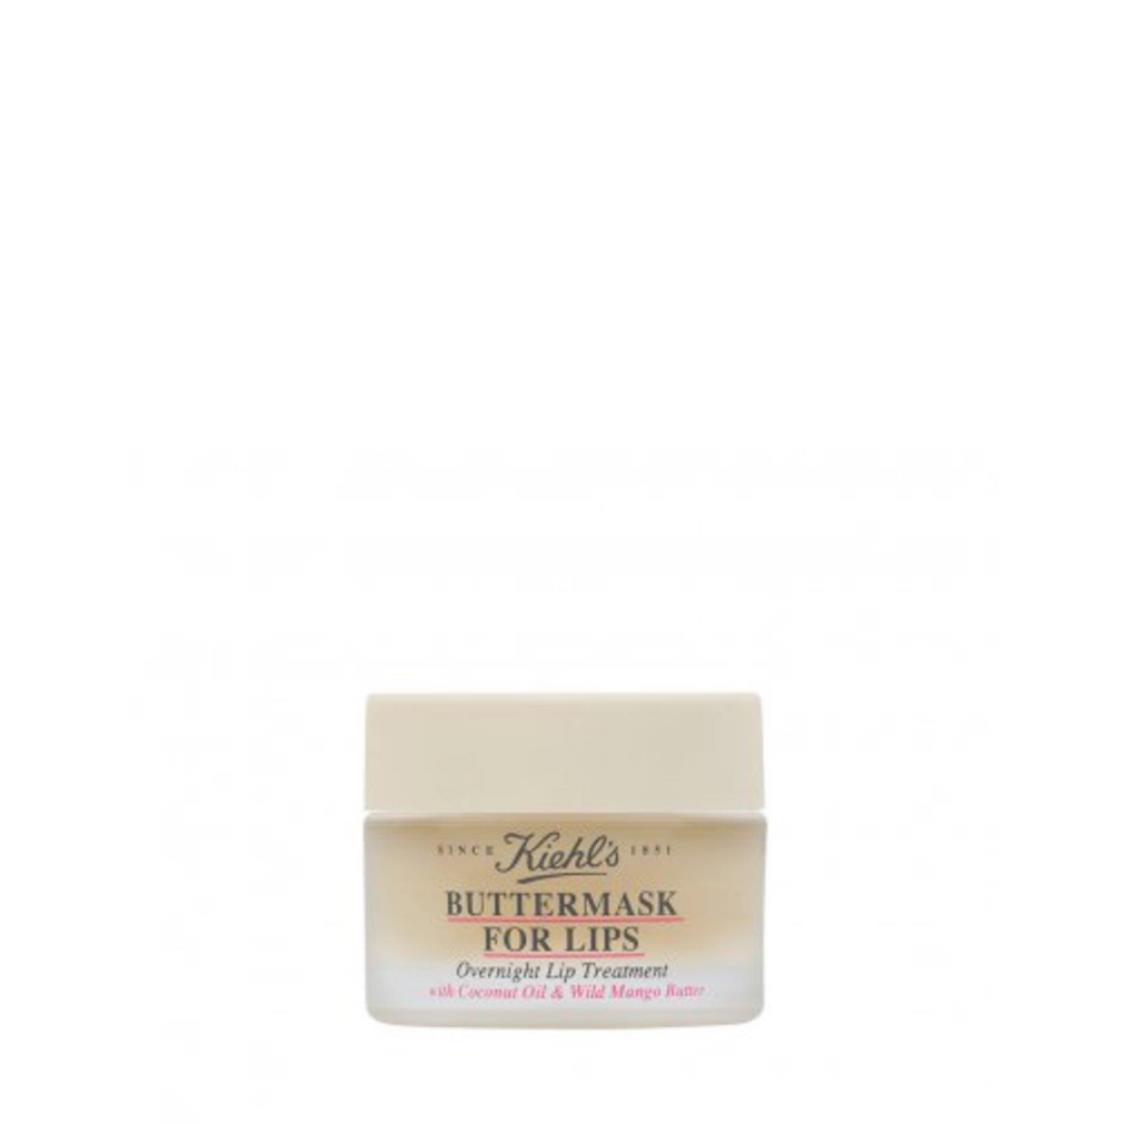 Buttermask for Lips